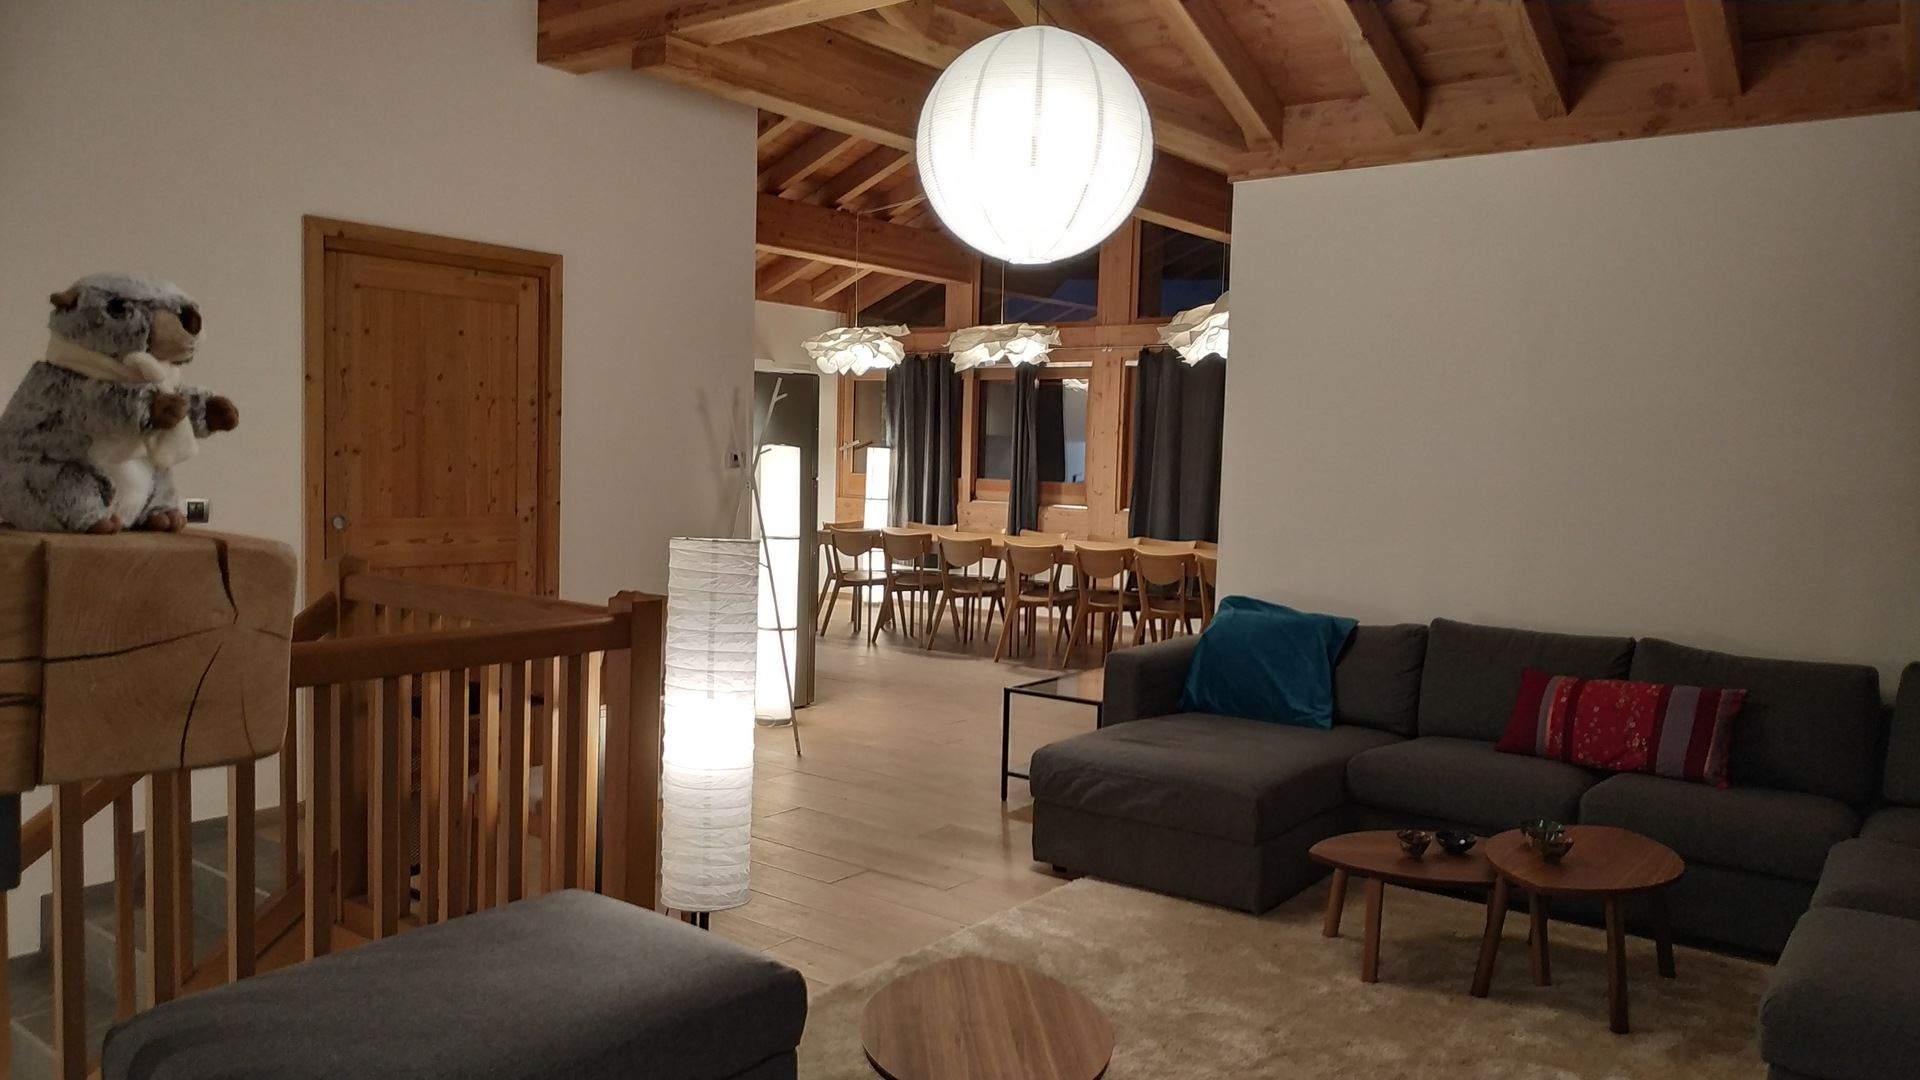 8 Room 16 Pers ski-in ski-out / CASEBLANCHE I6